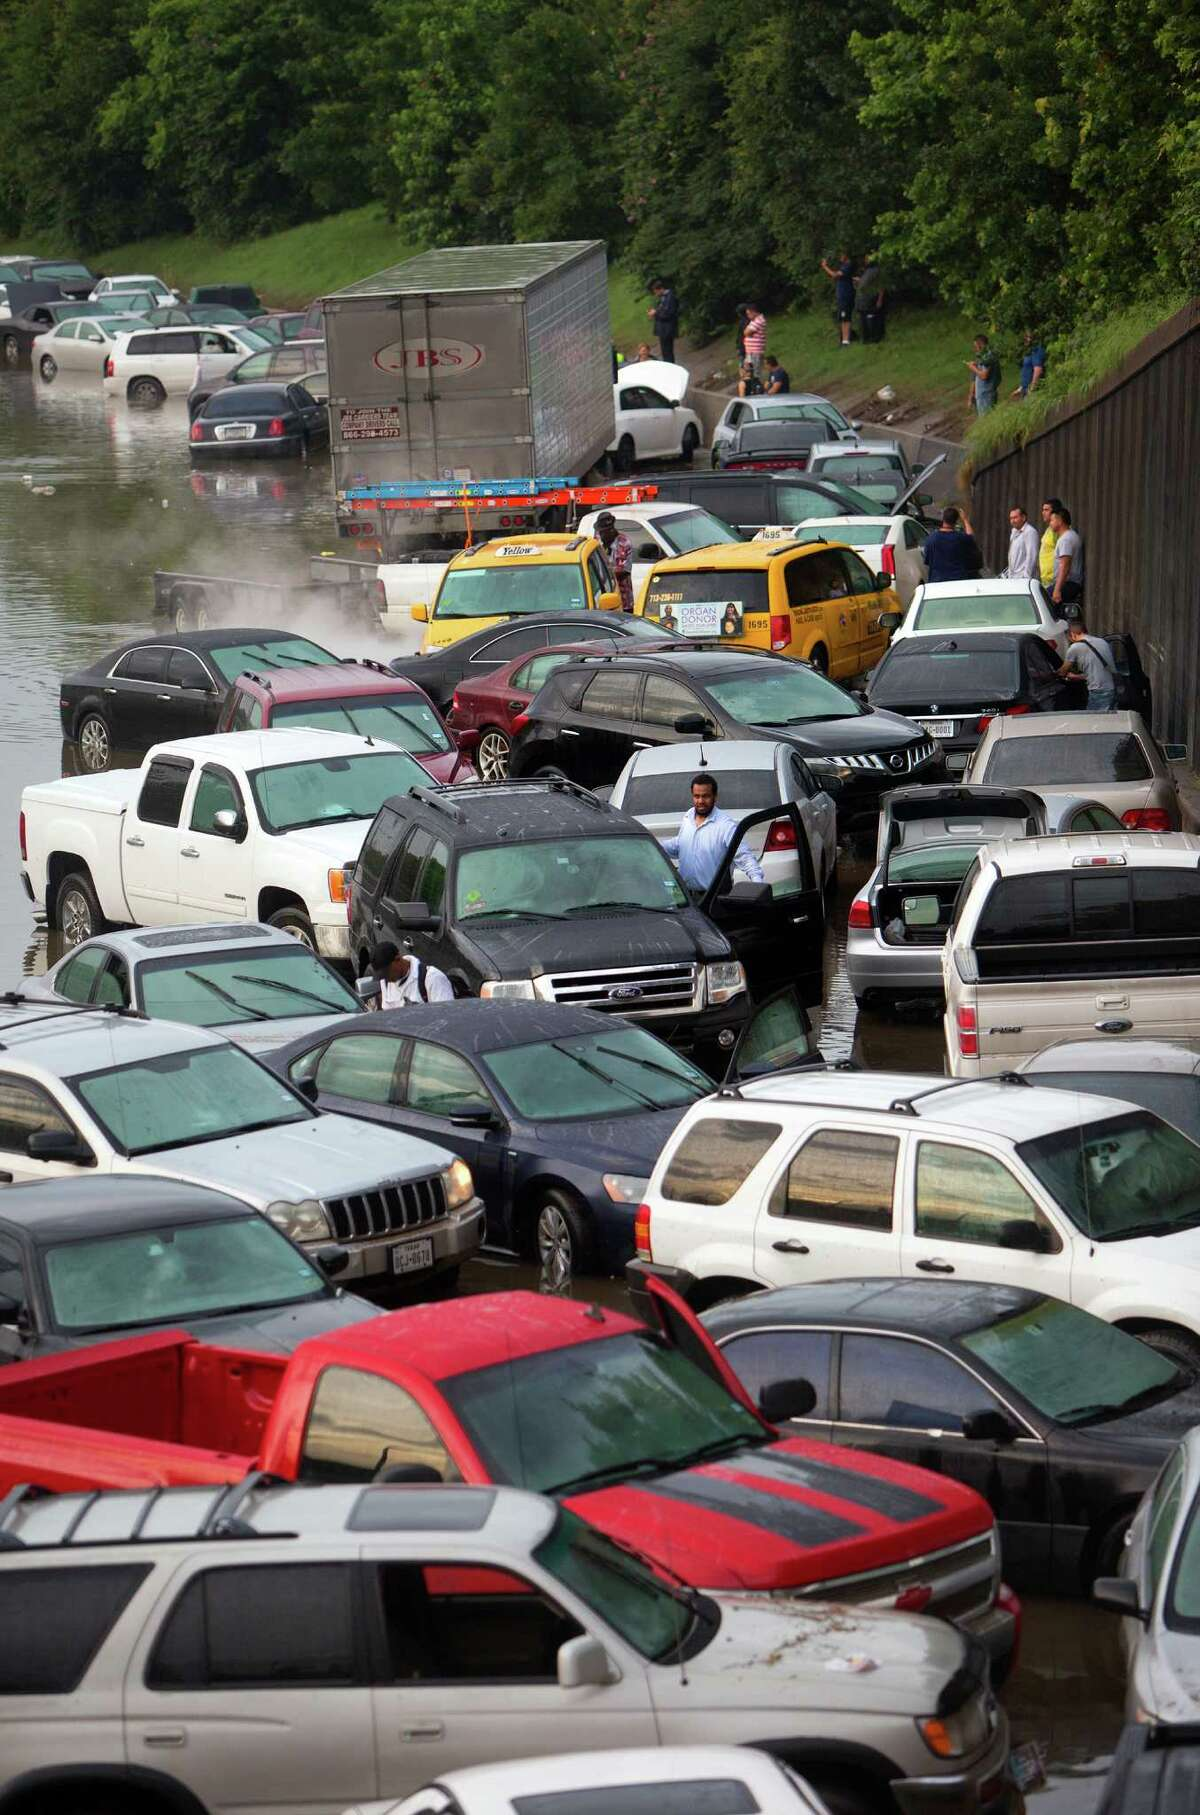 Motorists are seen stranded along I-45 along North Main after storms flooded the area, Tuesday, May 26, 2015, in Houston.